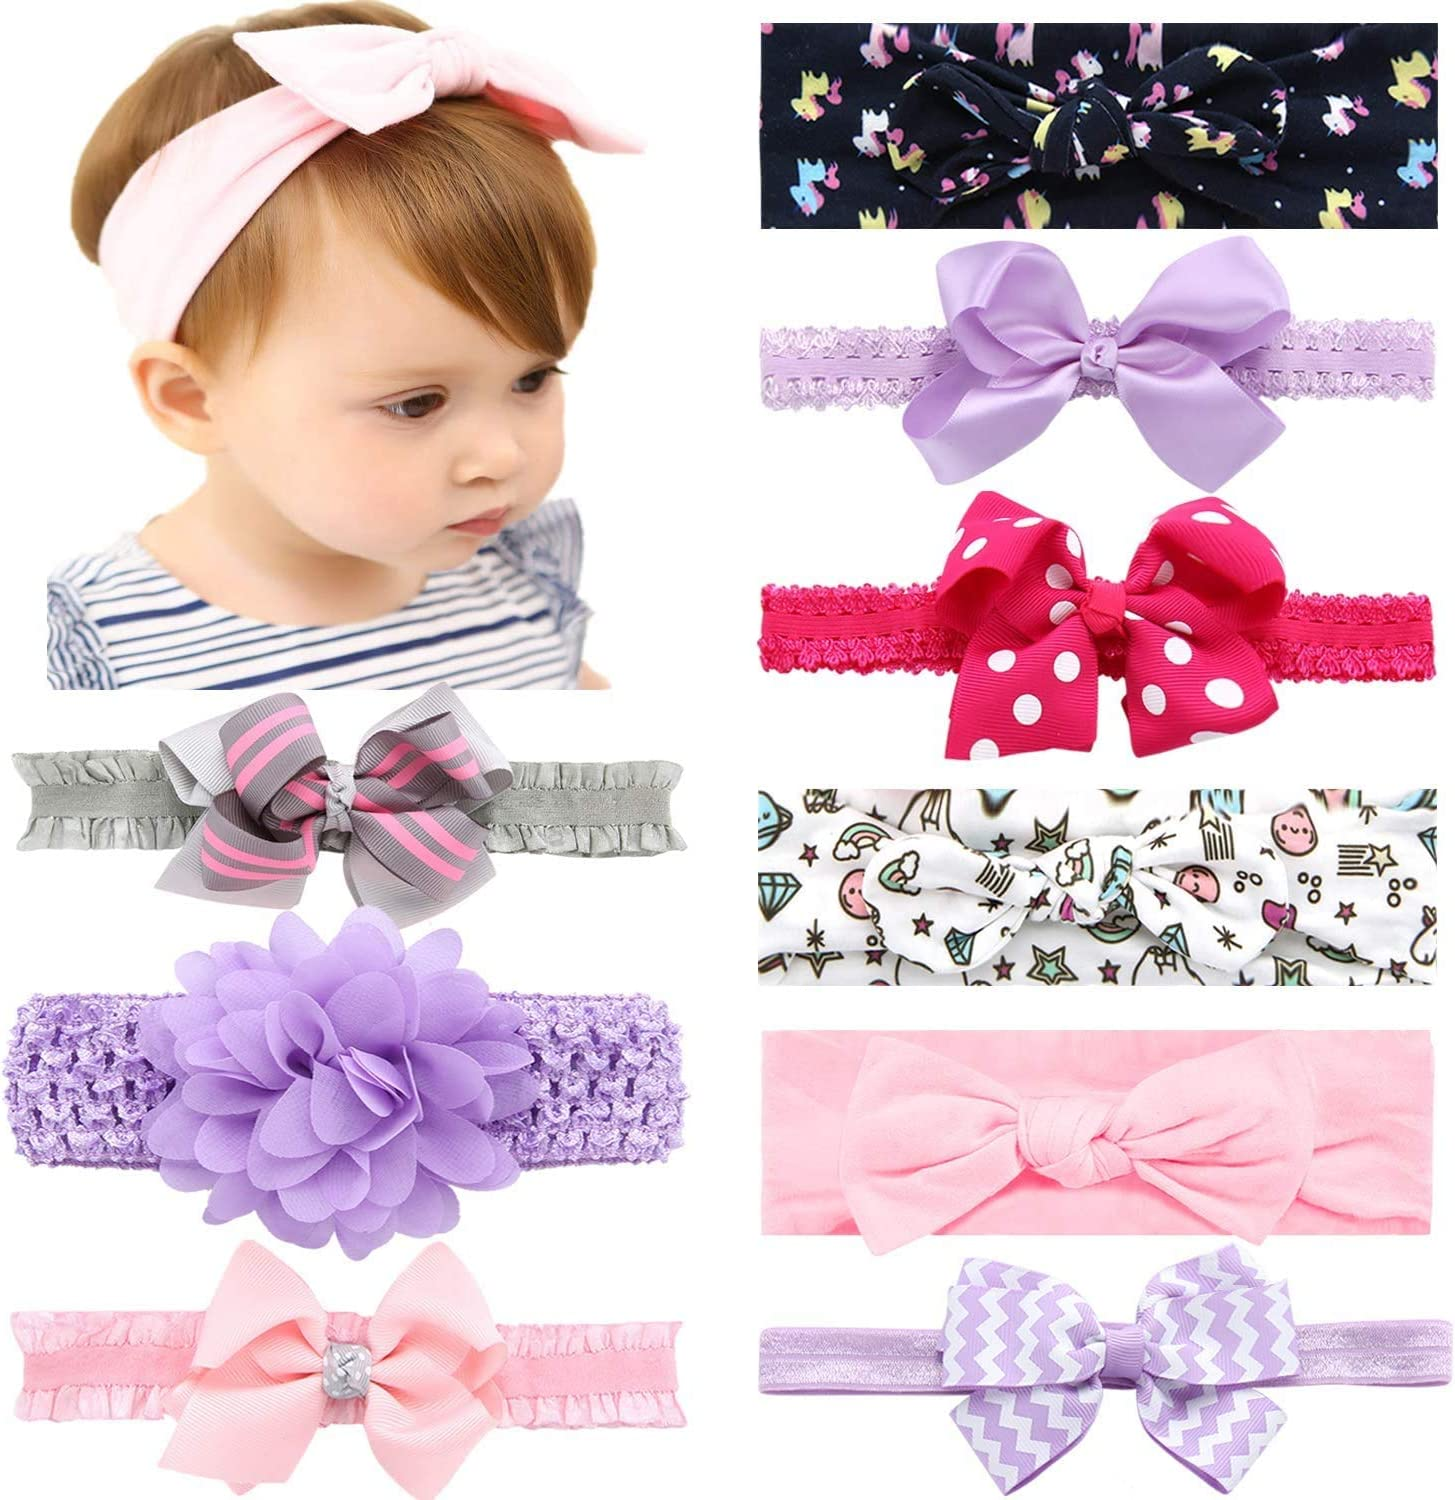 Hair Bows Baby Shower Gift Birthday Gift You can choose the colors Headband Velvet Bow Headbands-Newborn Headbands Baby Girl Headbands